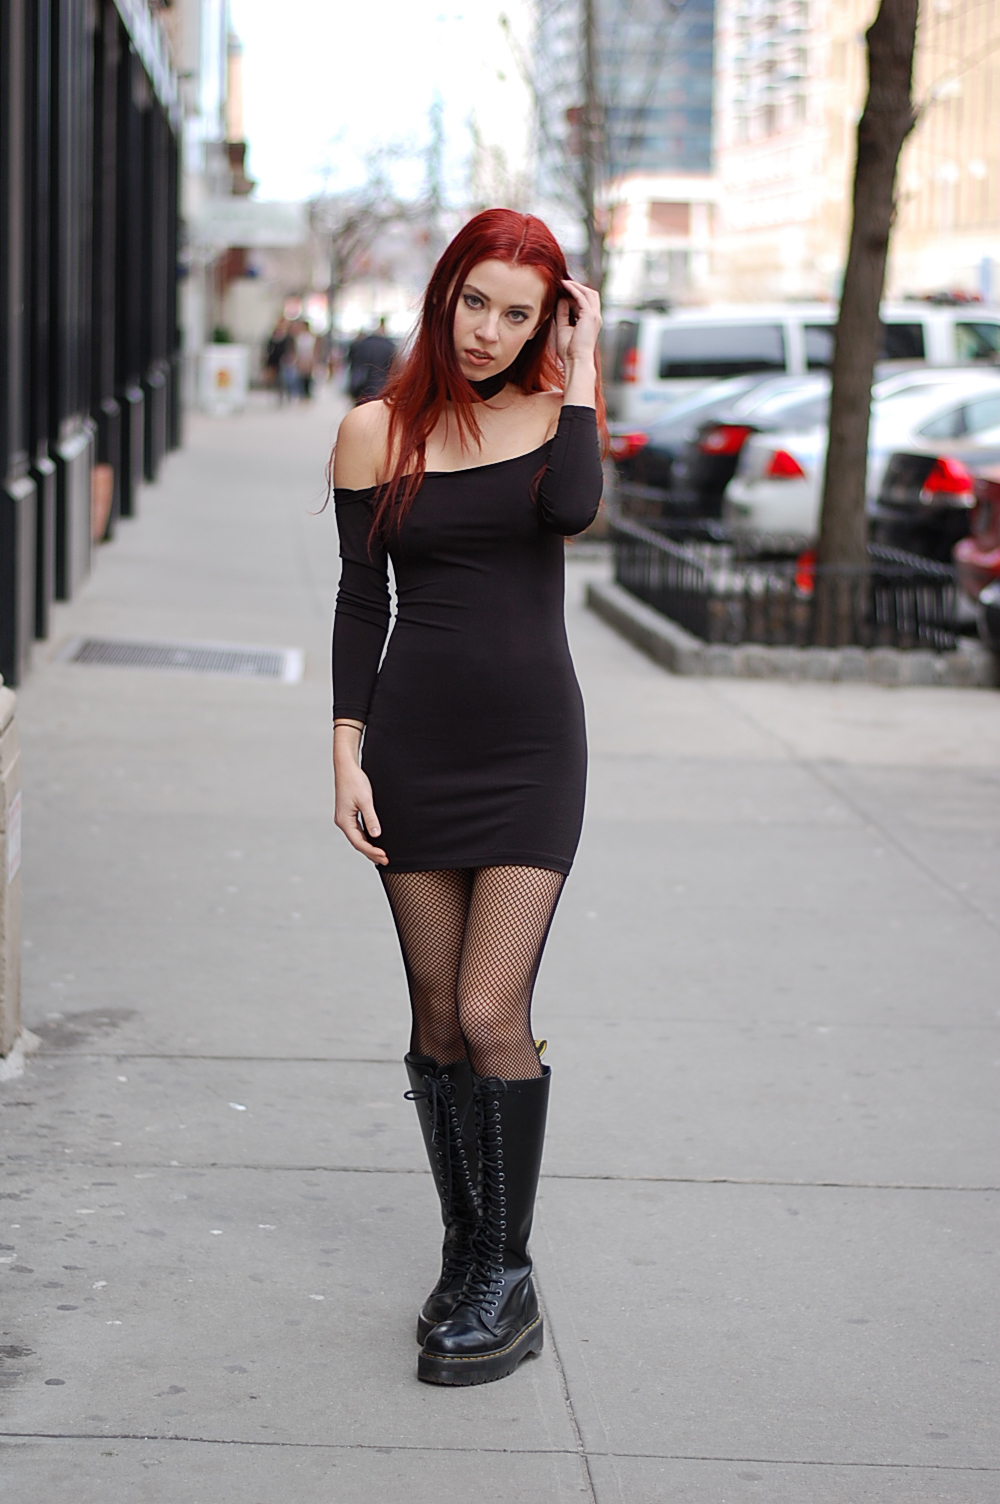 Black dress and boots images